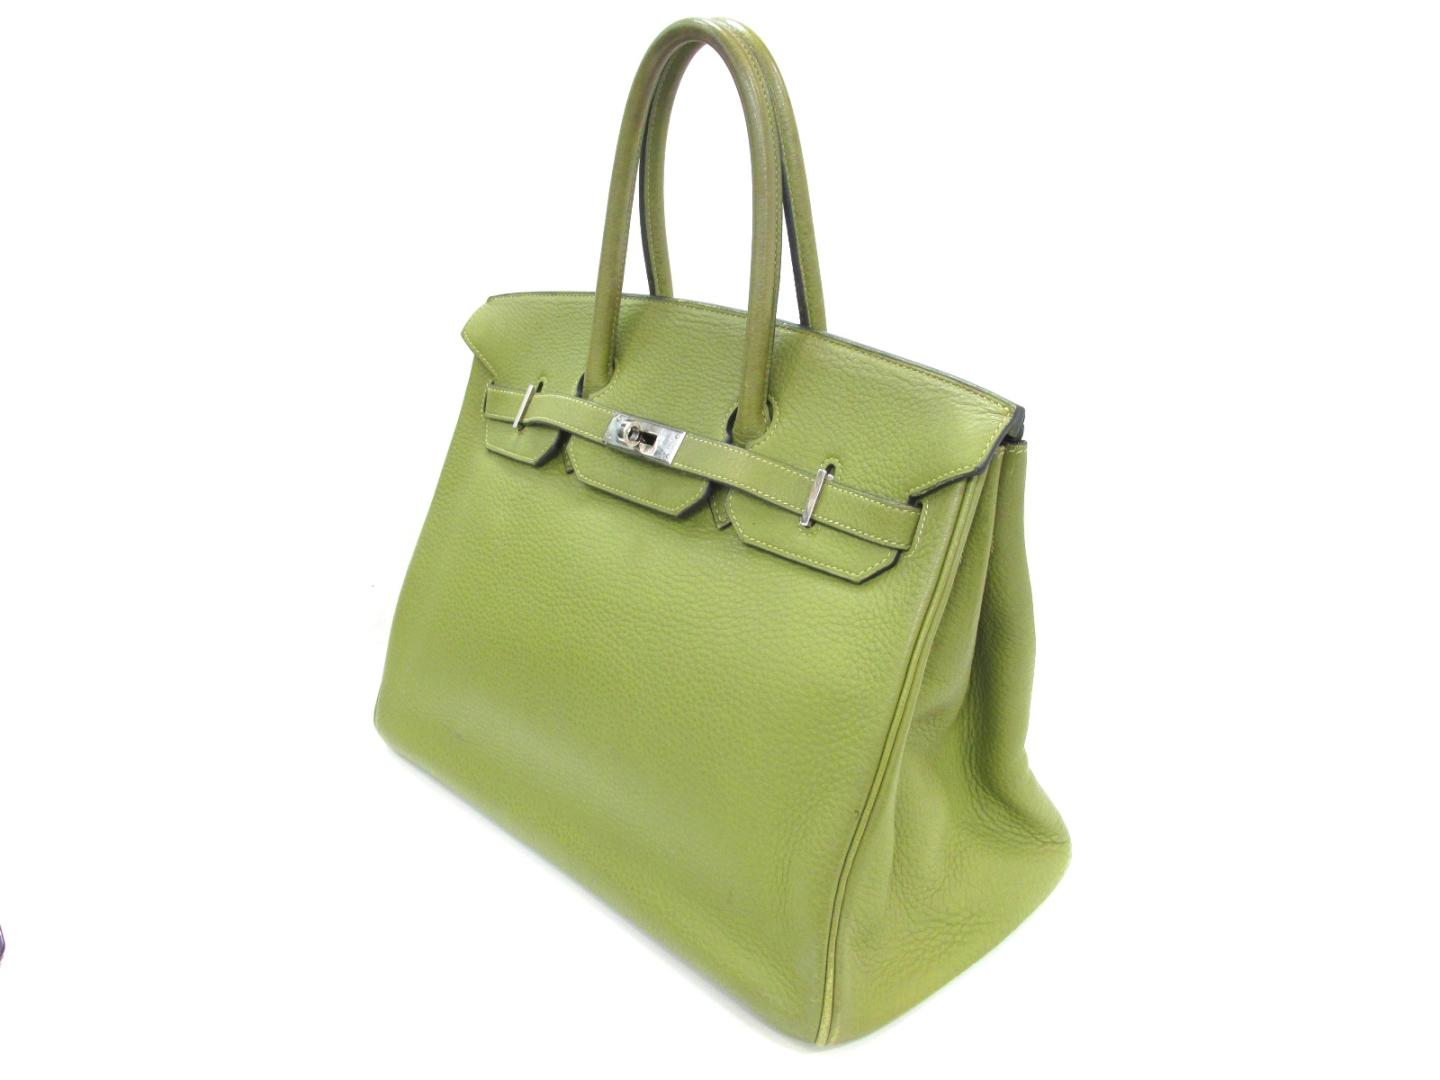 Authentic HERMES Birkin 35 Hand tote Bag Clemence leather Vert anis Green  SHW 2d7ef3d41c